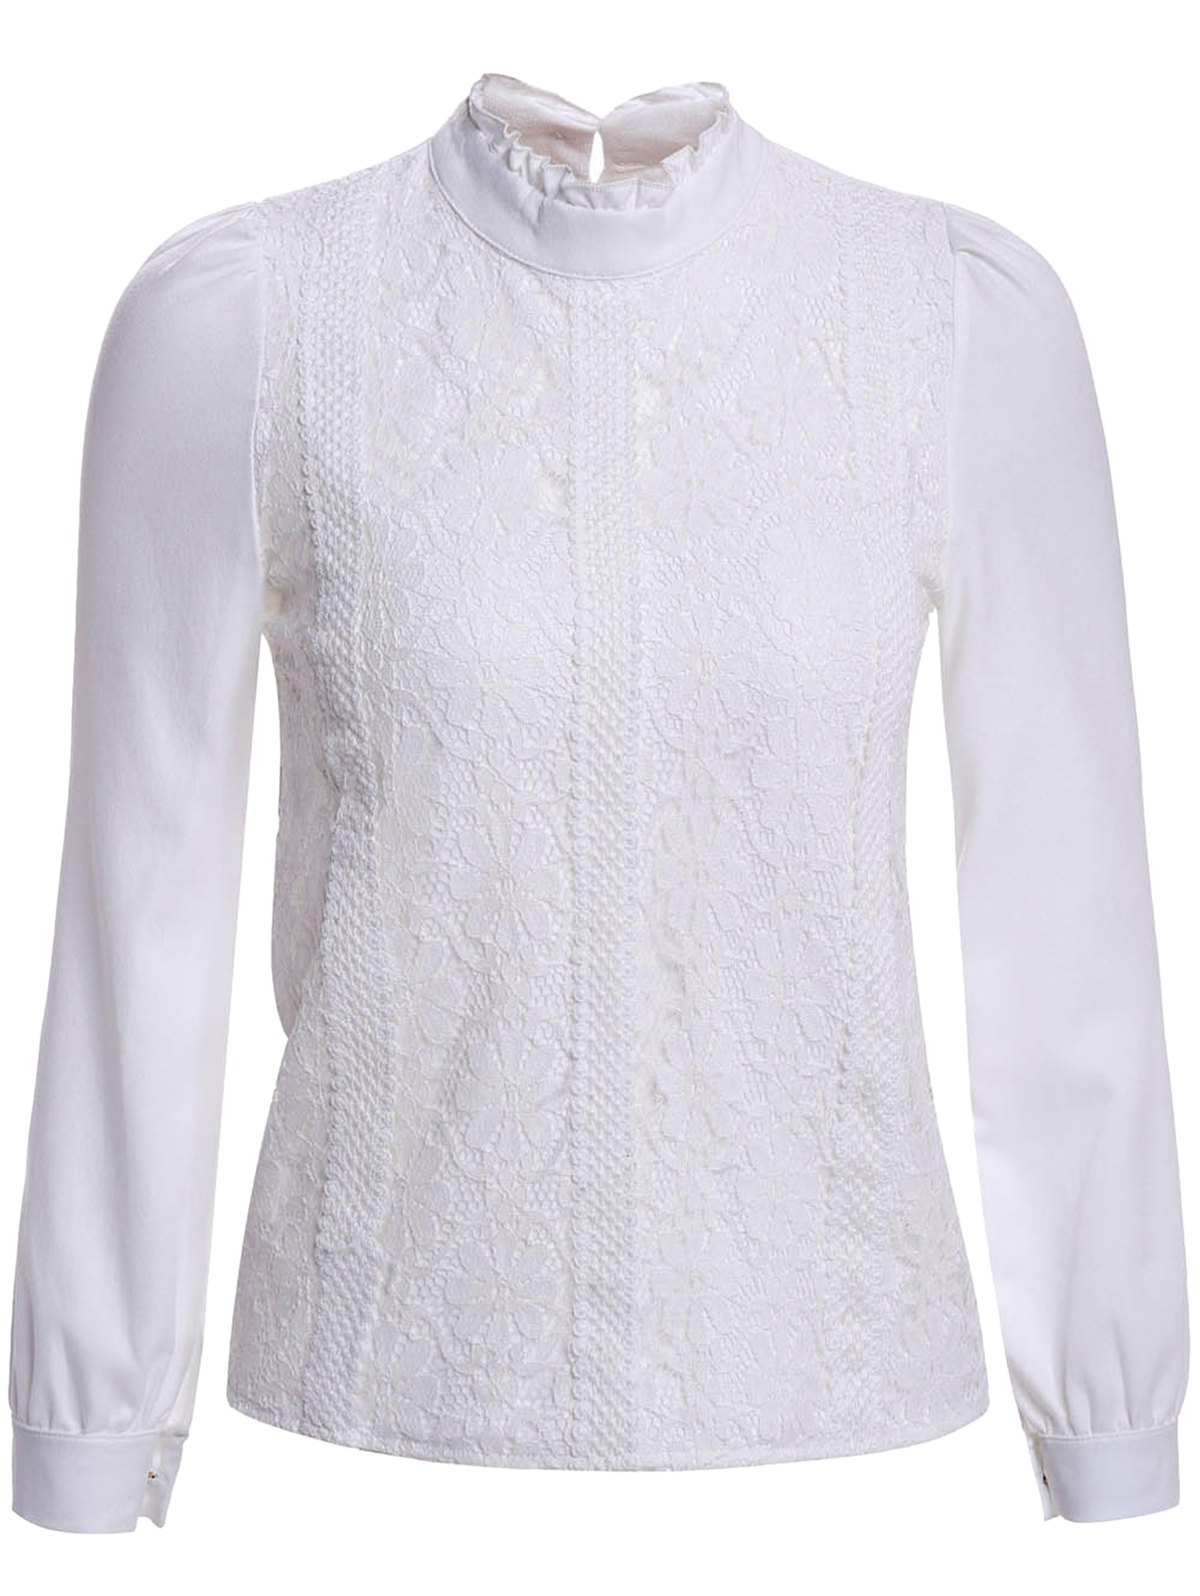 Elegant Stand Collar Long Sleeve Lace Splicing Blouse For Women - WHITE S